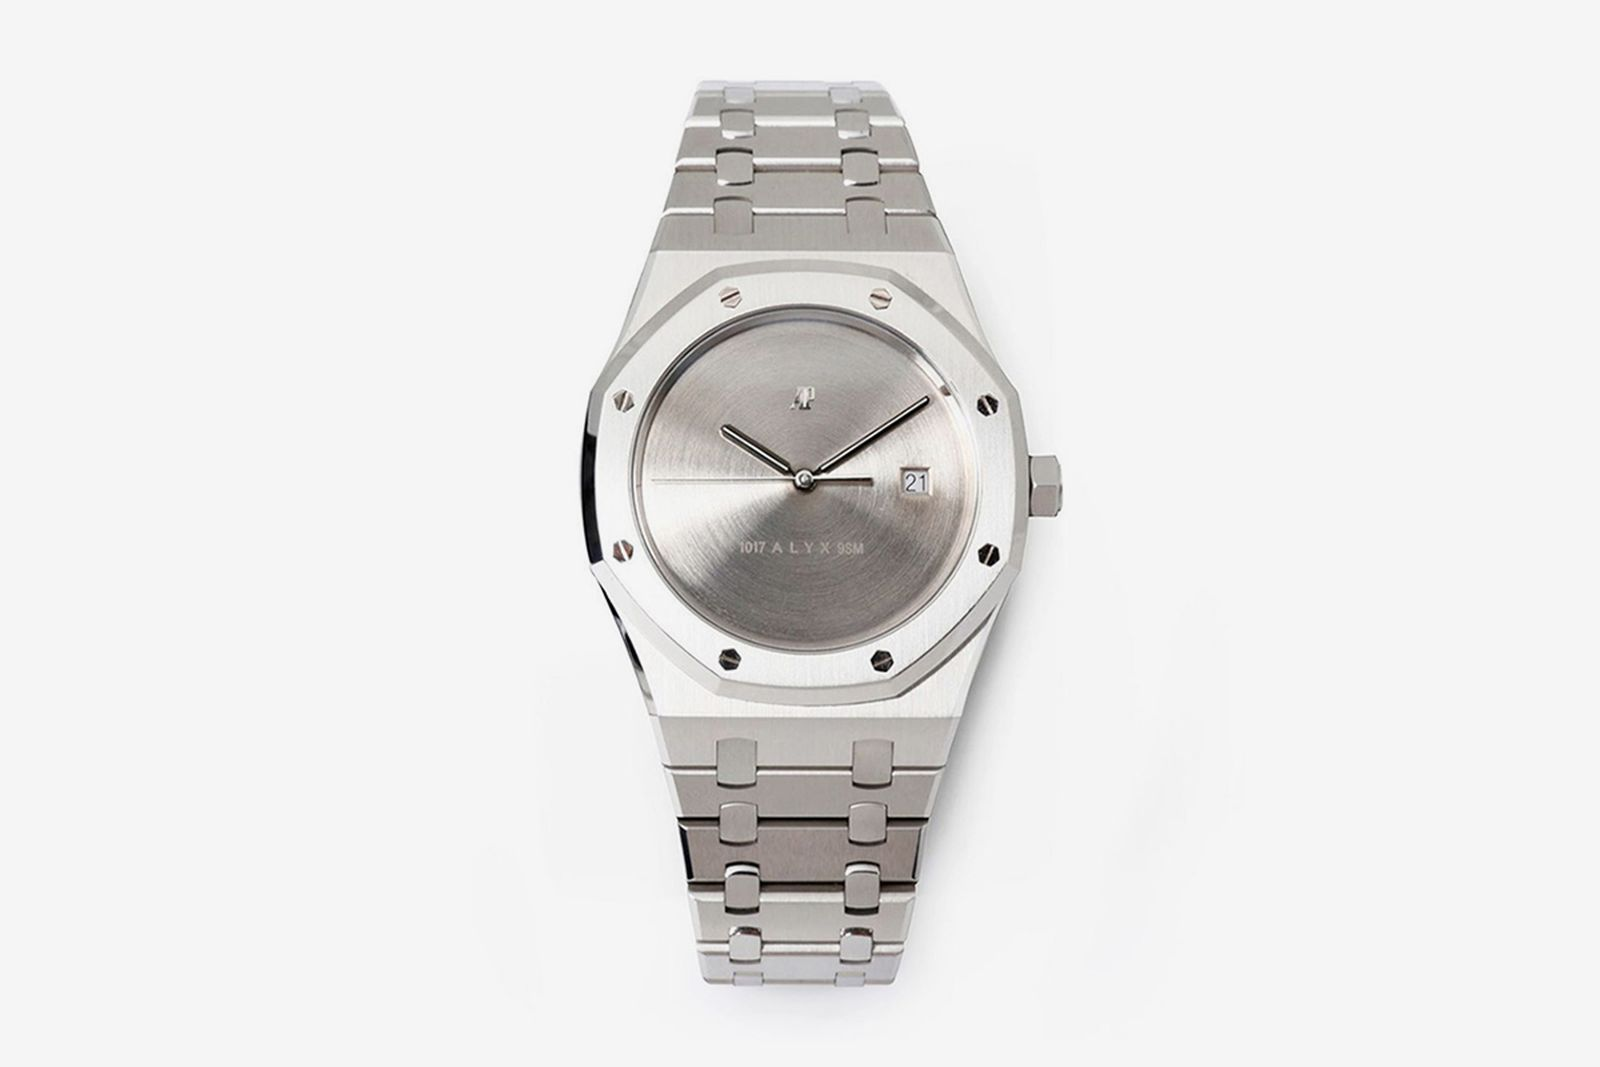 Matthew Williams 1017 ALYX 9SM Audemars Piguet